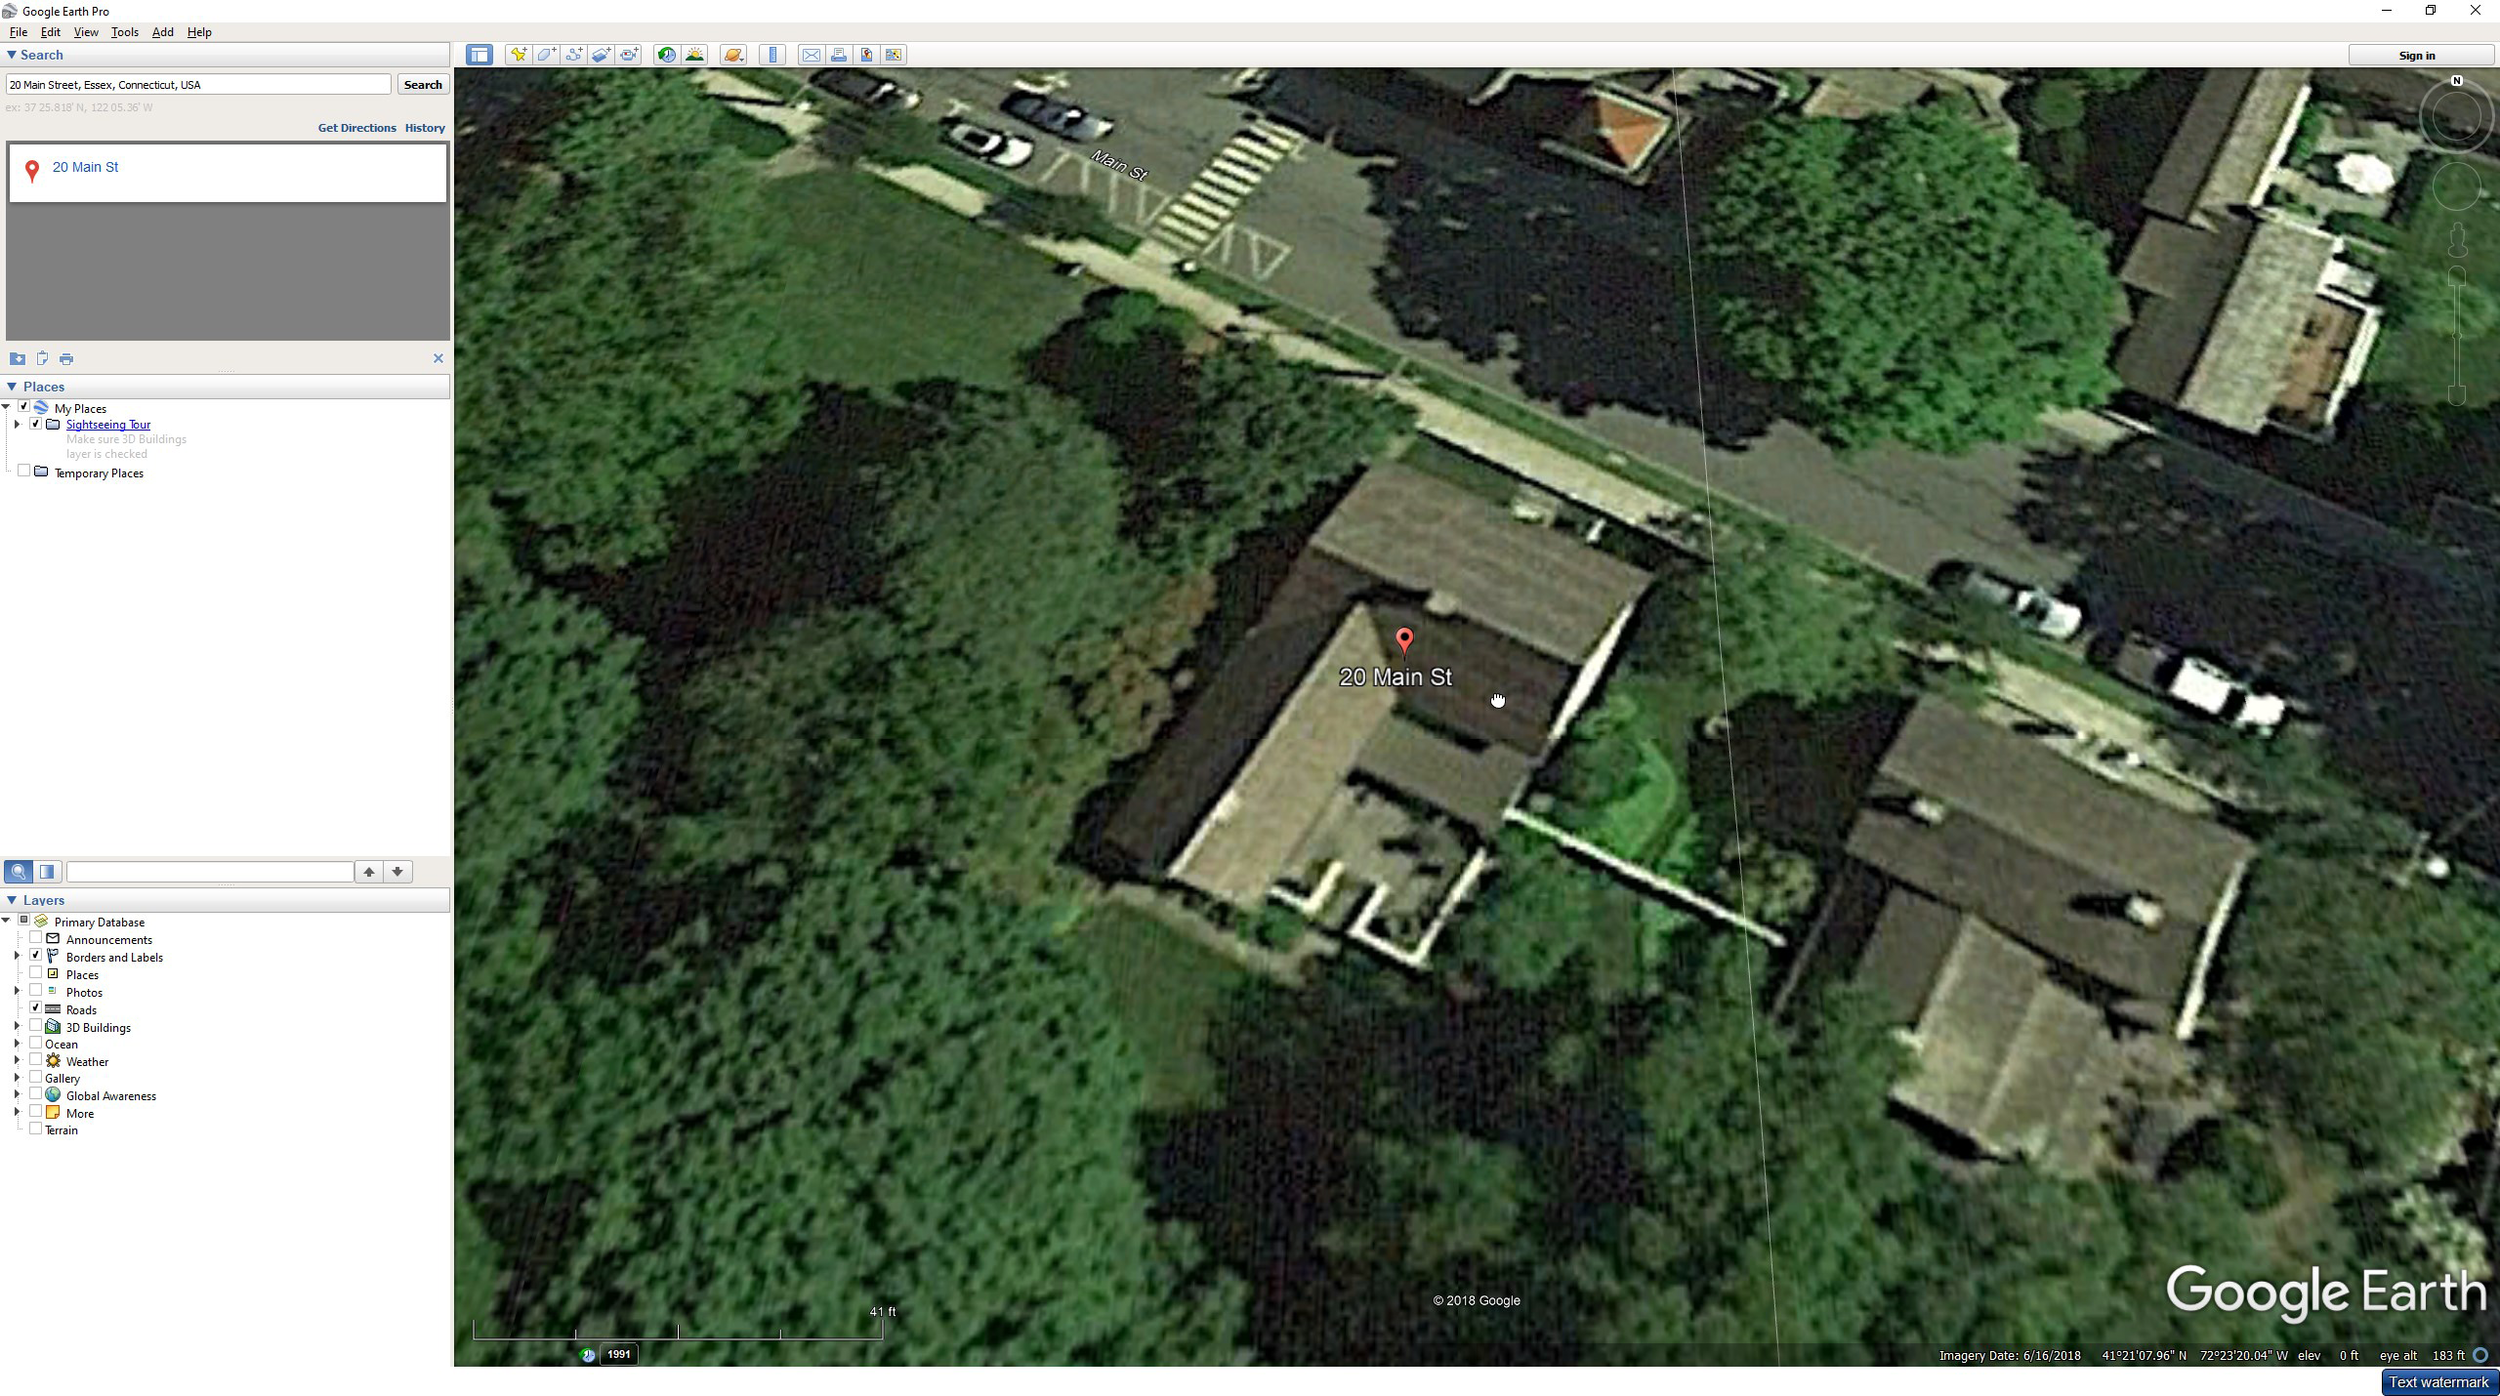 RoofOnline.com - How to Find Your House in Google Earth 10.png